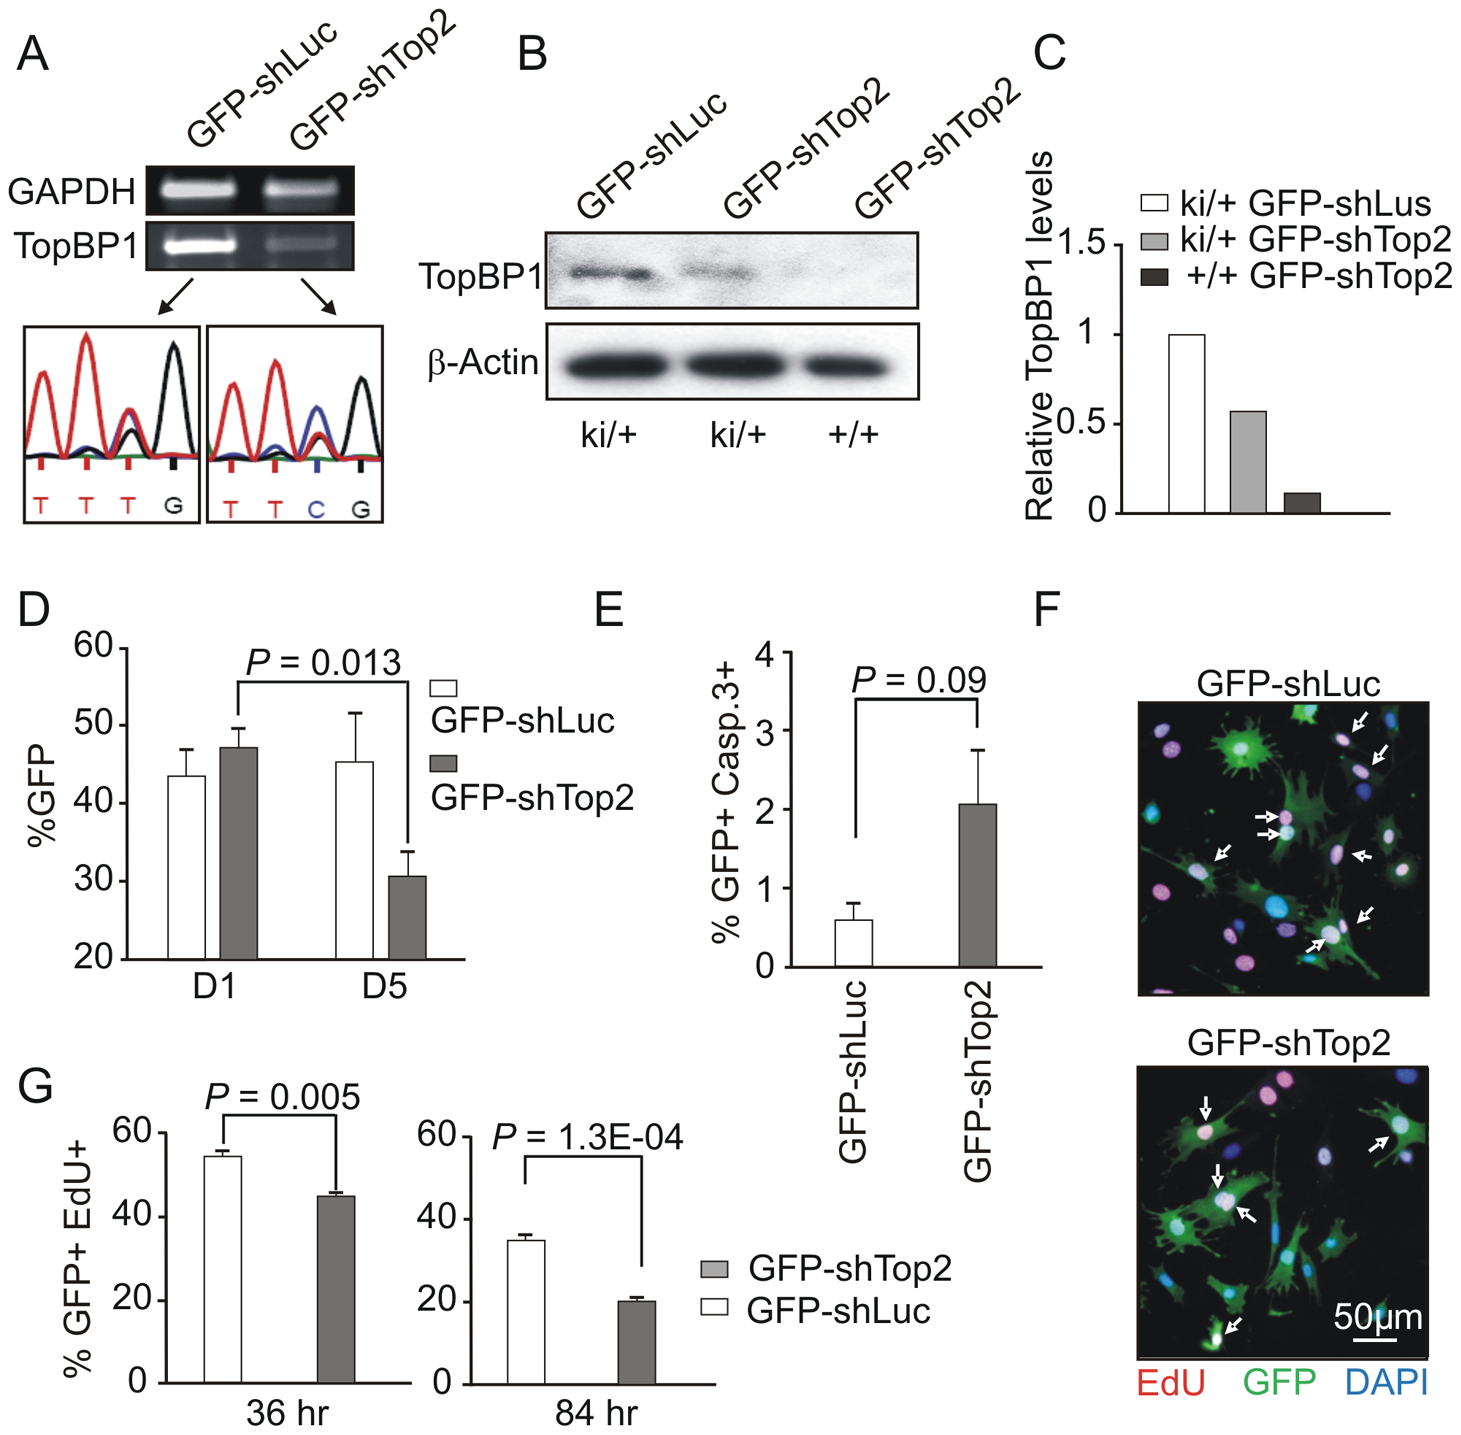 AAD mutation compromises cell proliferation and promotes cellular senescence.